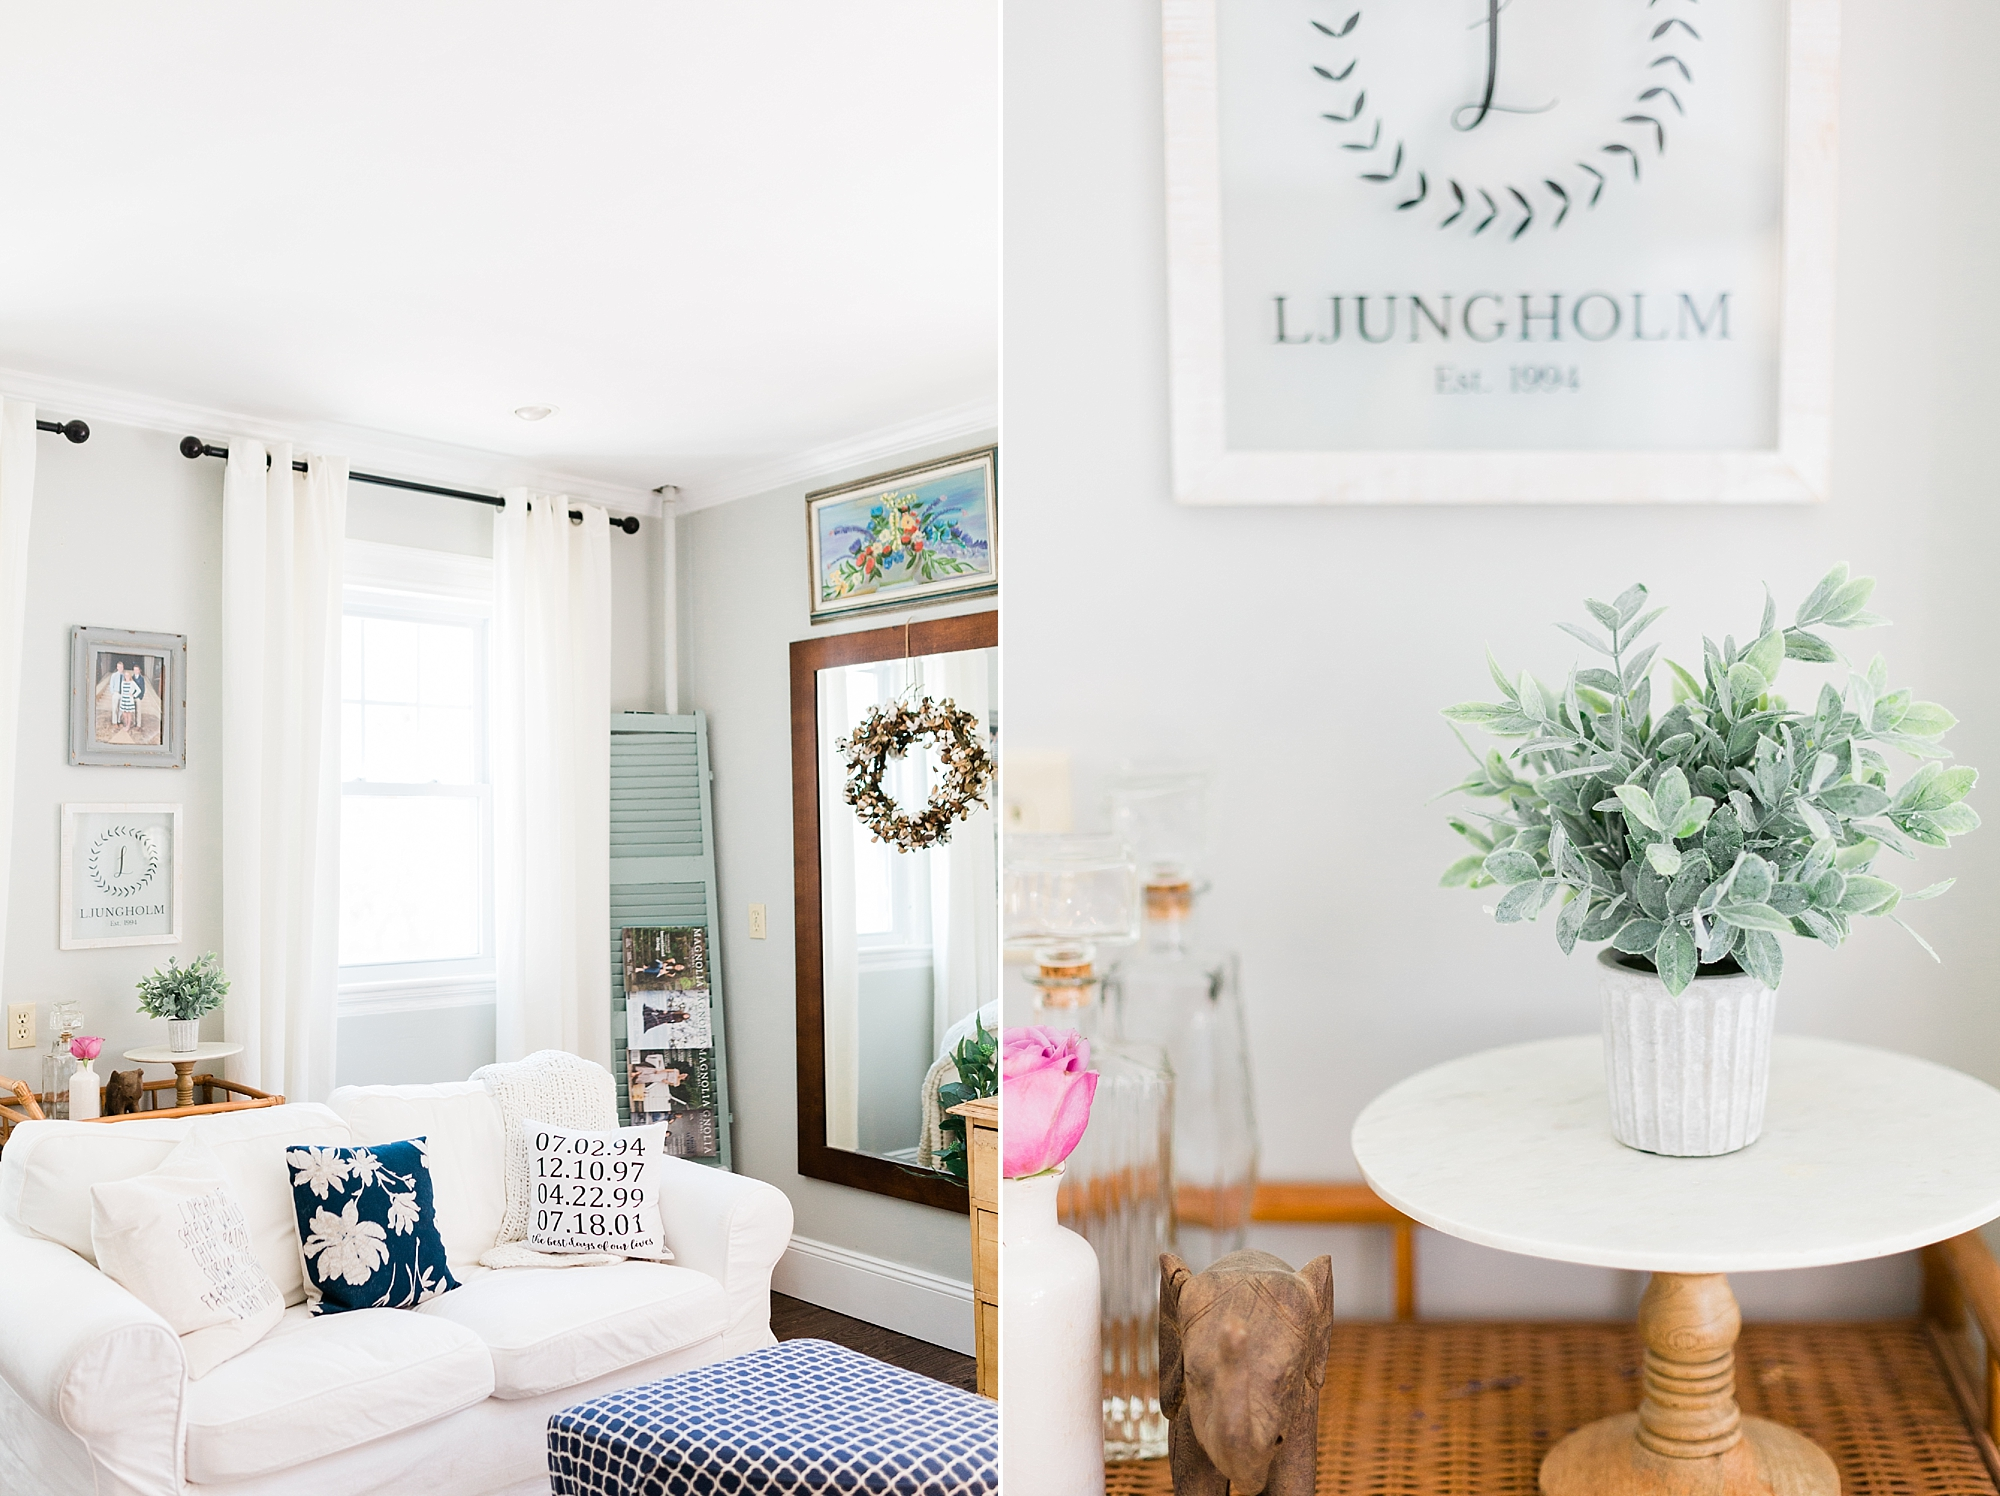 Living Room - Interior Design - New England Home - Madison Rae Photography